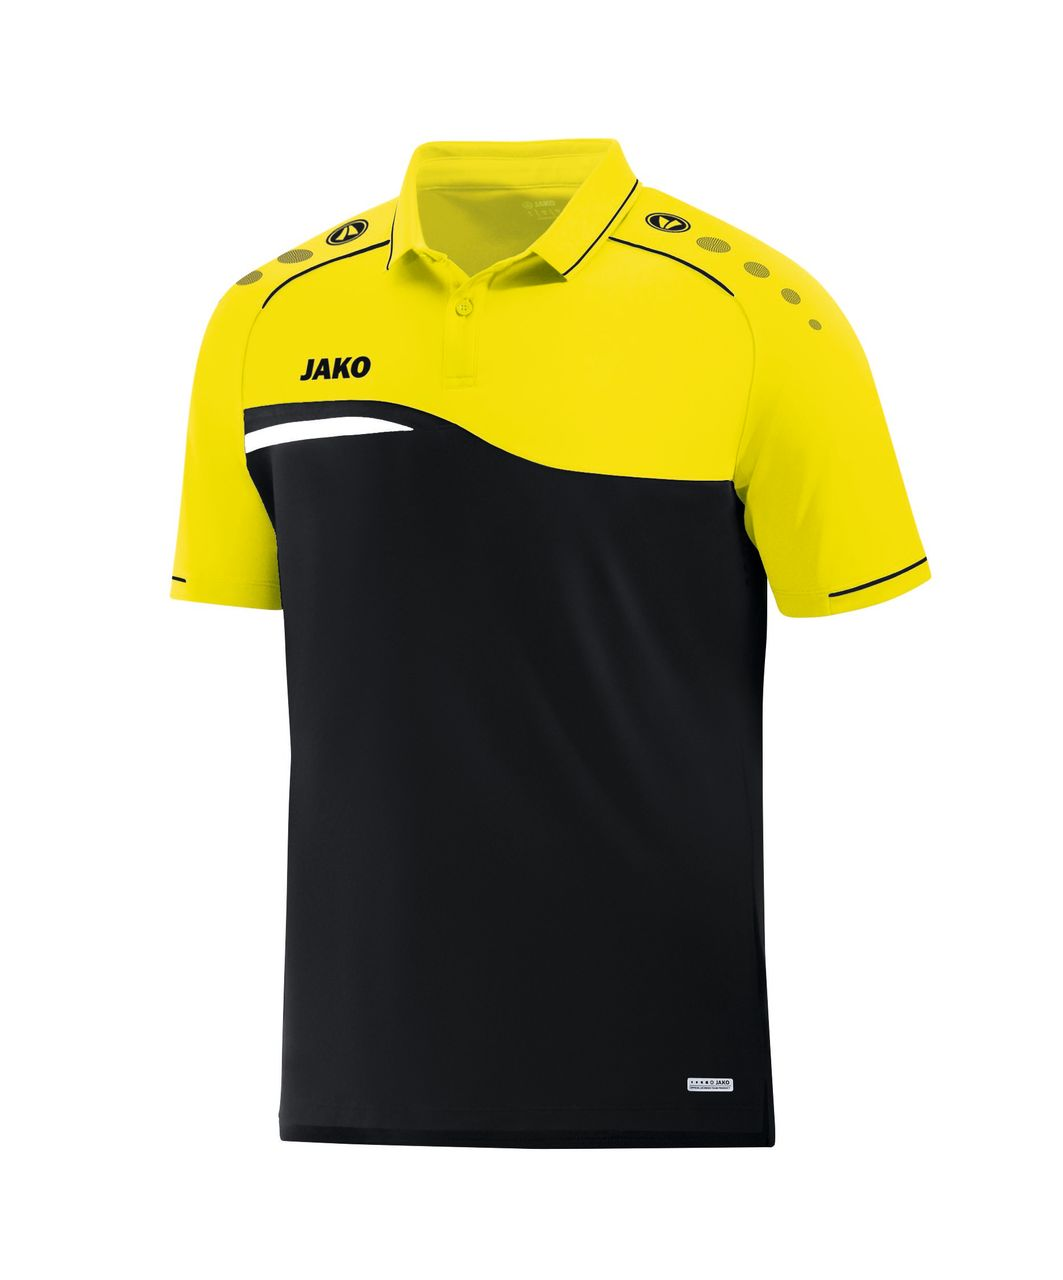 JAKO Polo Competition 2.0